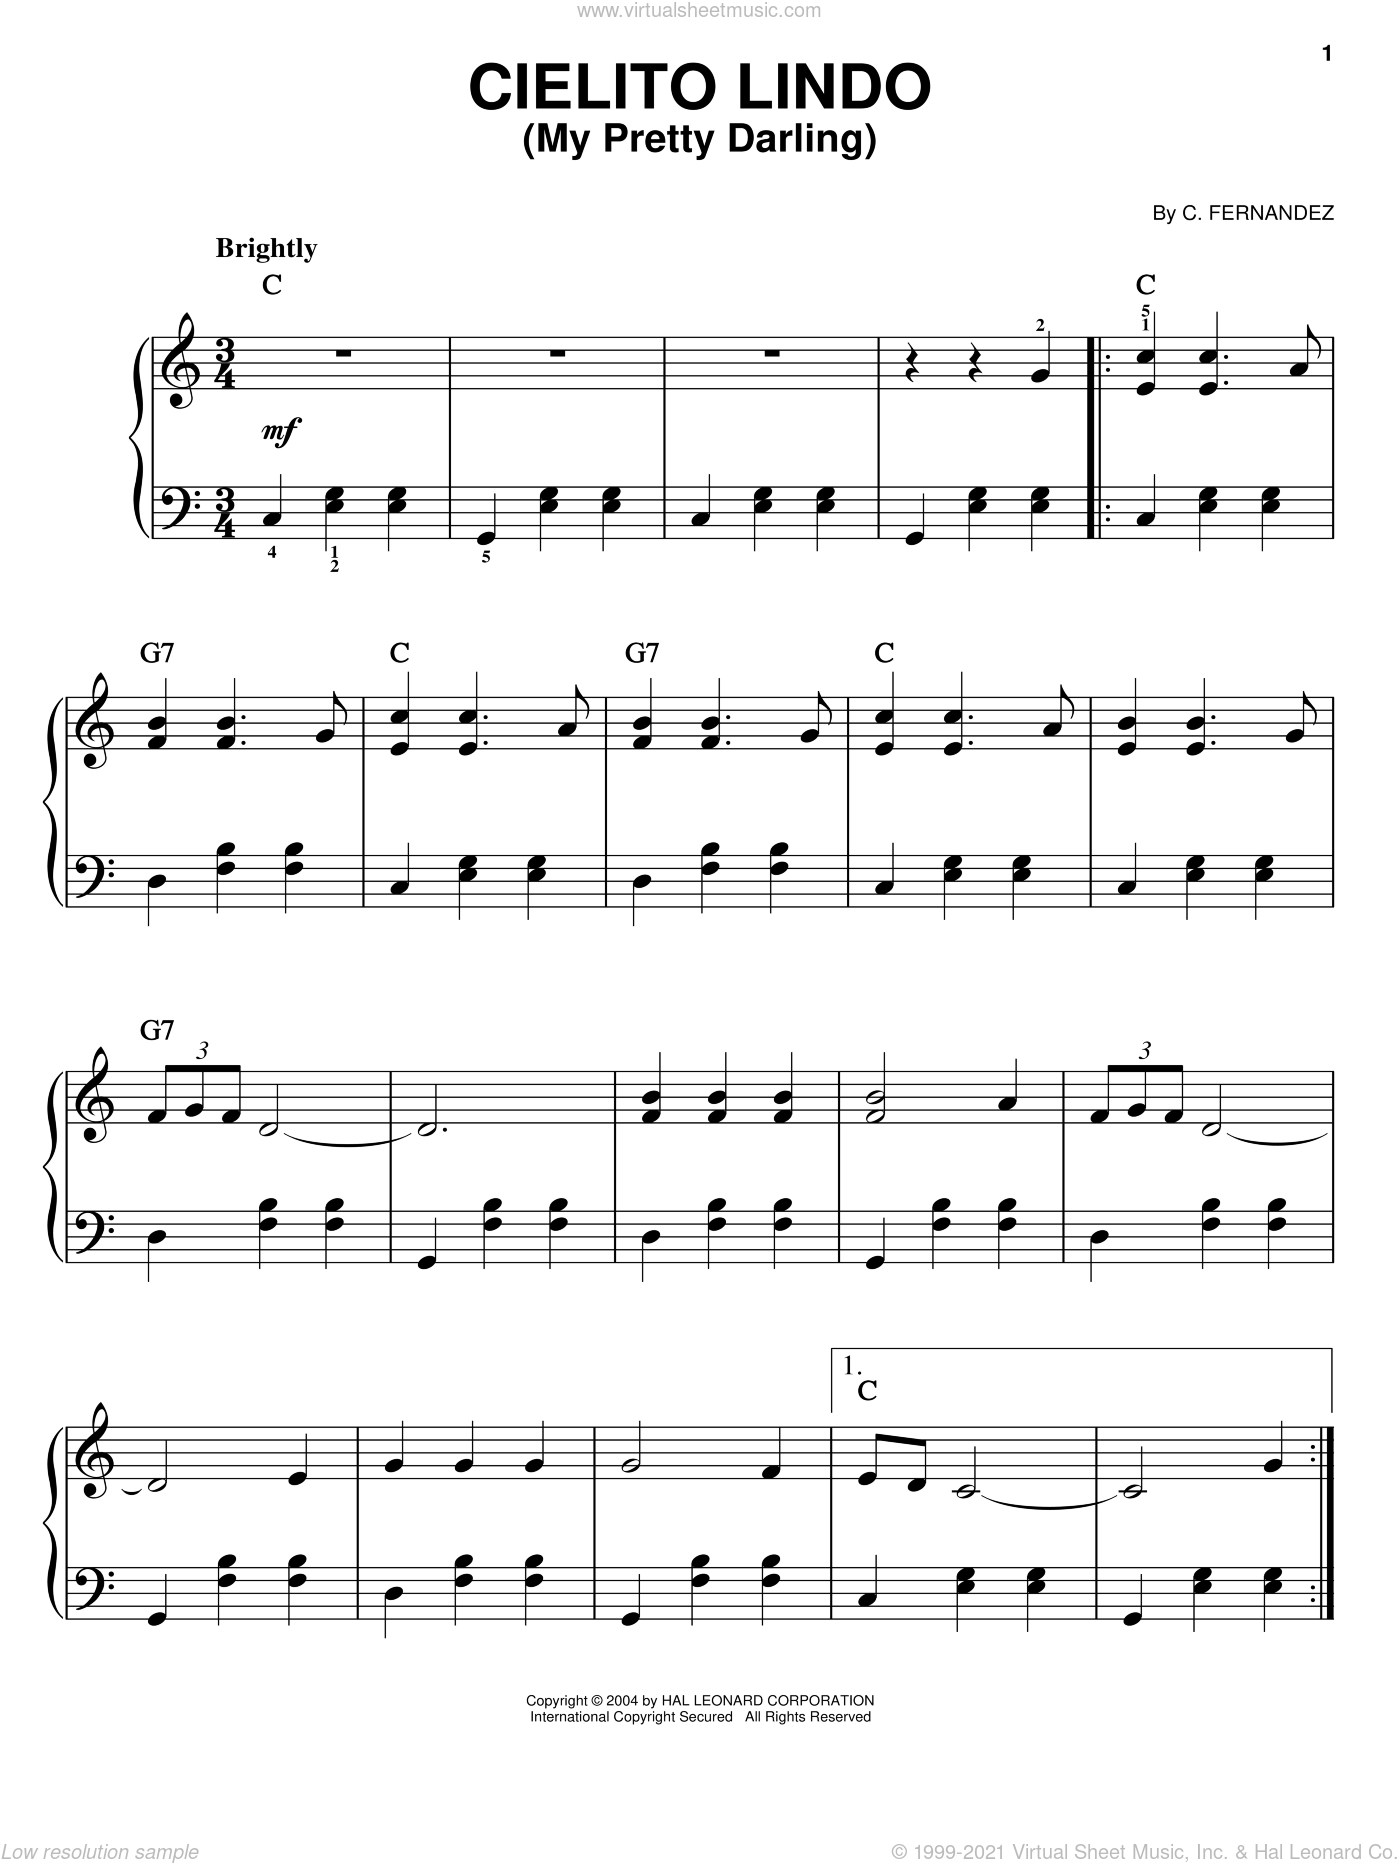 Cielito Lindo (My Pretty Darling) sheet music for piano solo (chords) by Cortez Fernandez